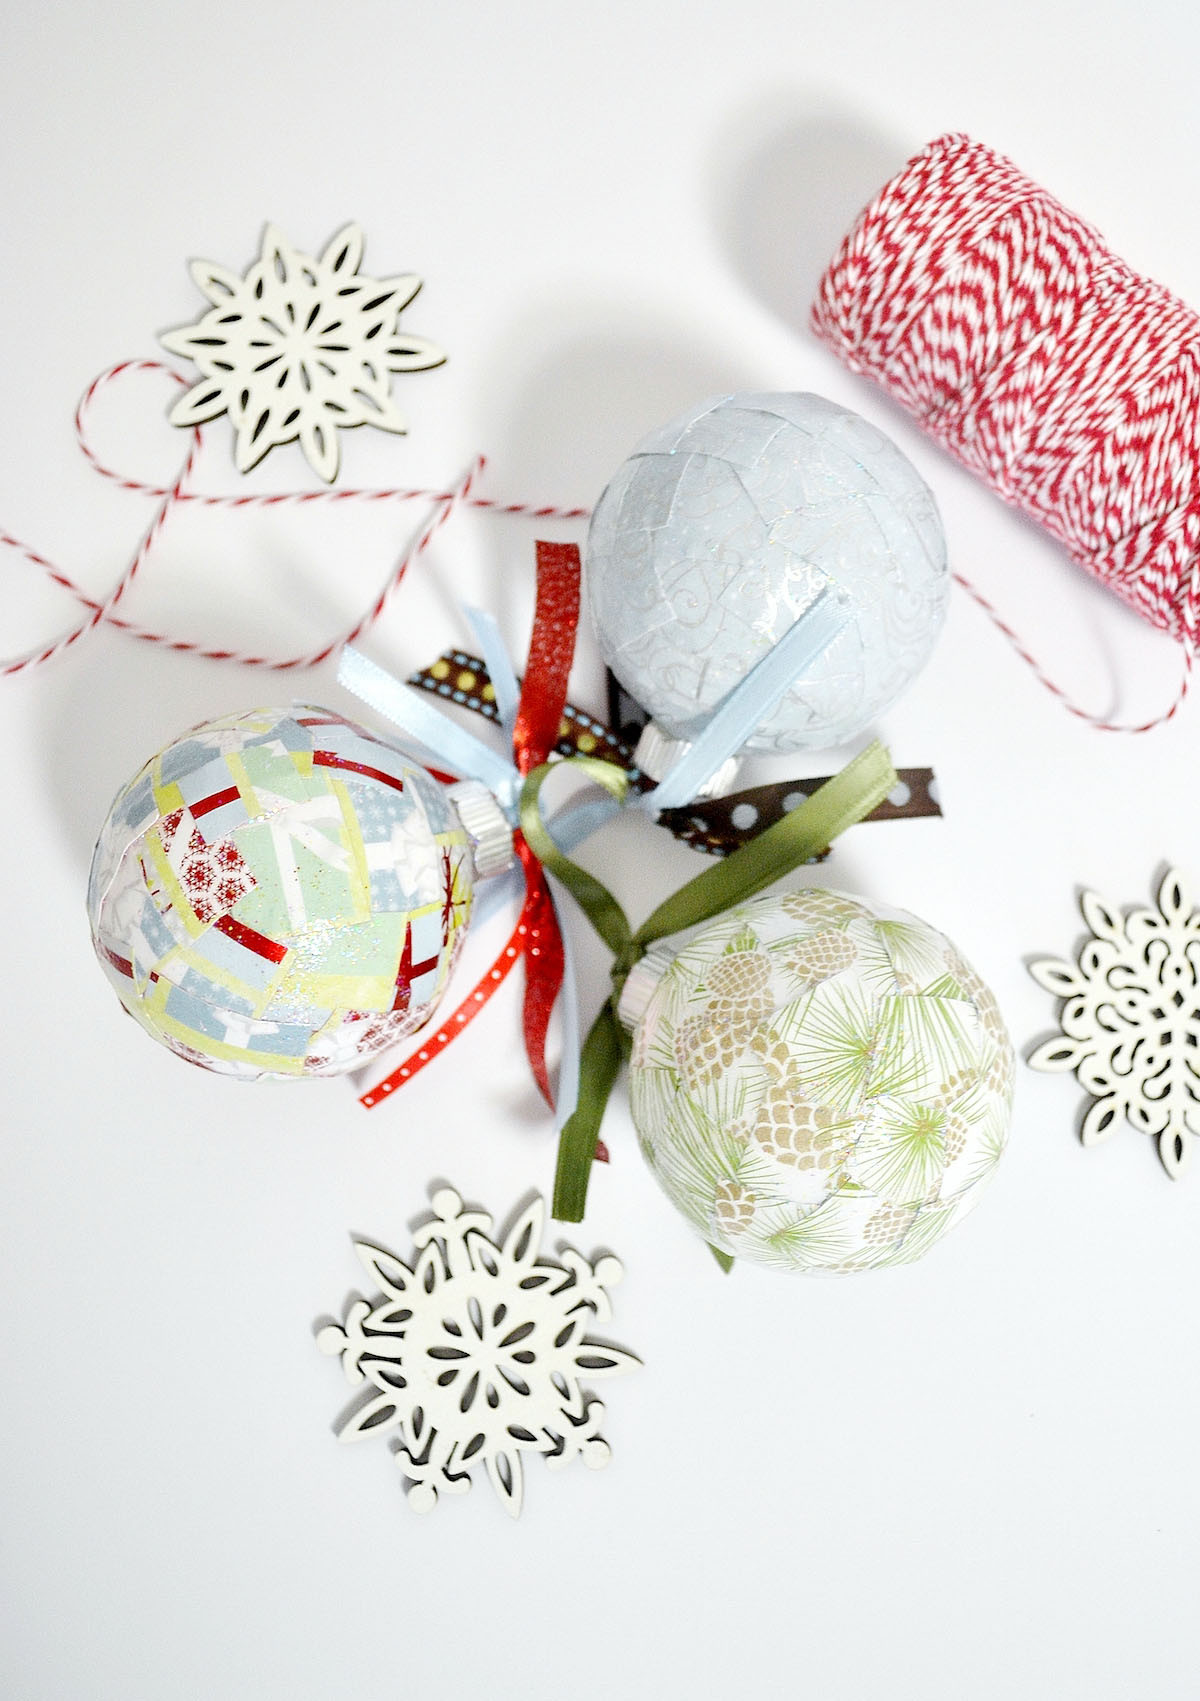 Best ideas about DIY Paper Christmas Decorations . Save or Pin 50 DIY Paper Christmas Ornaments To Create With The Kids Now.